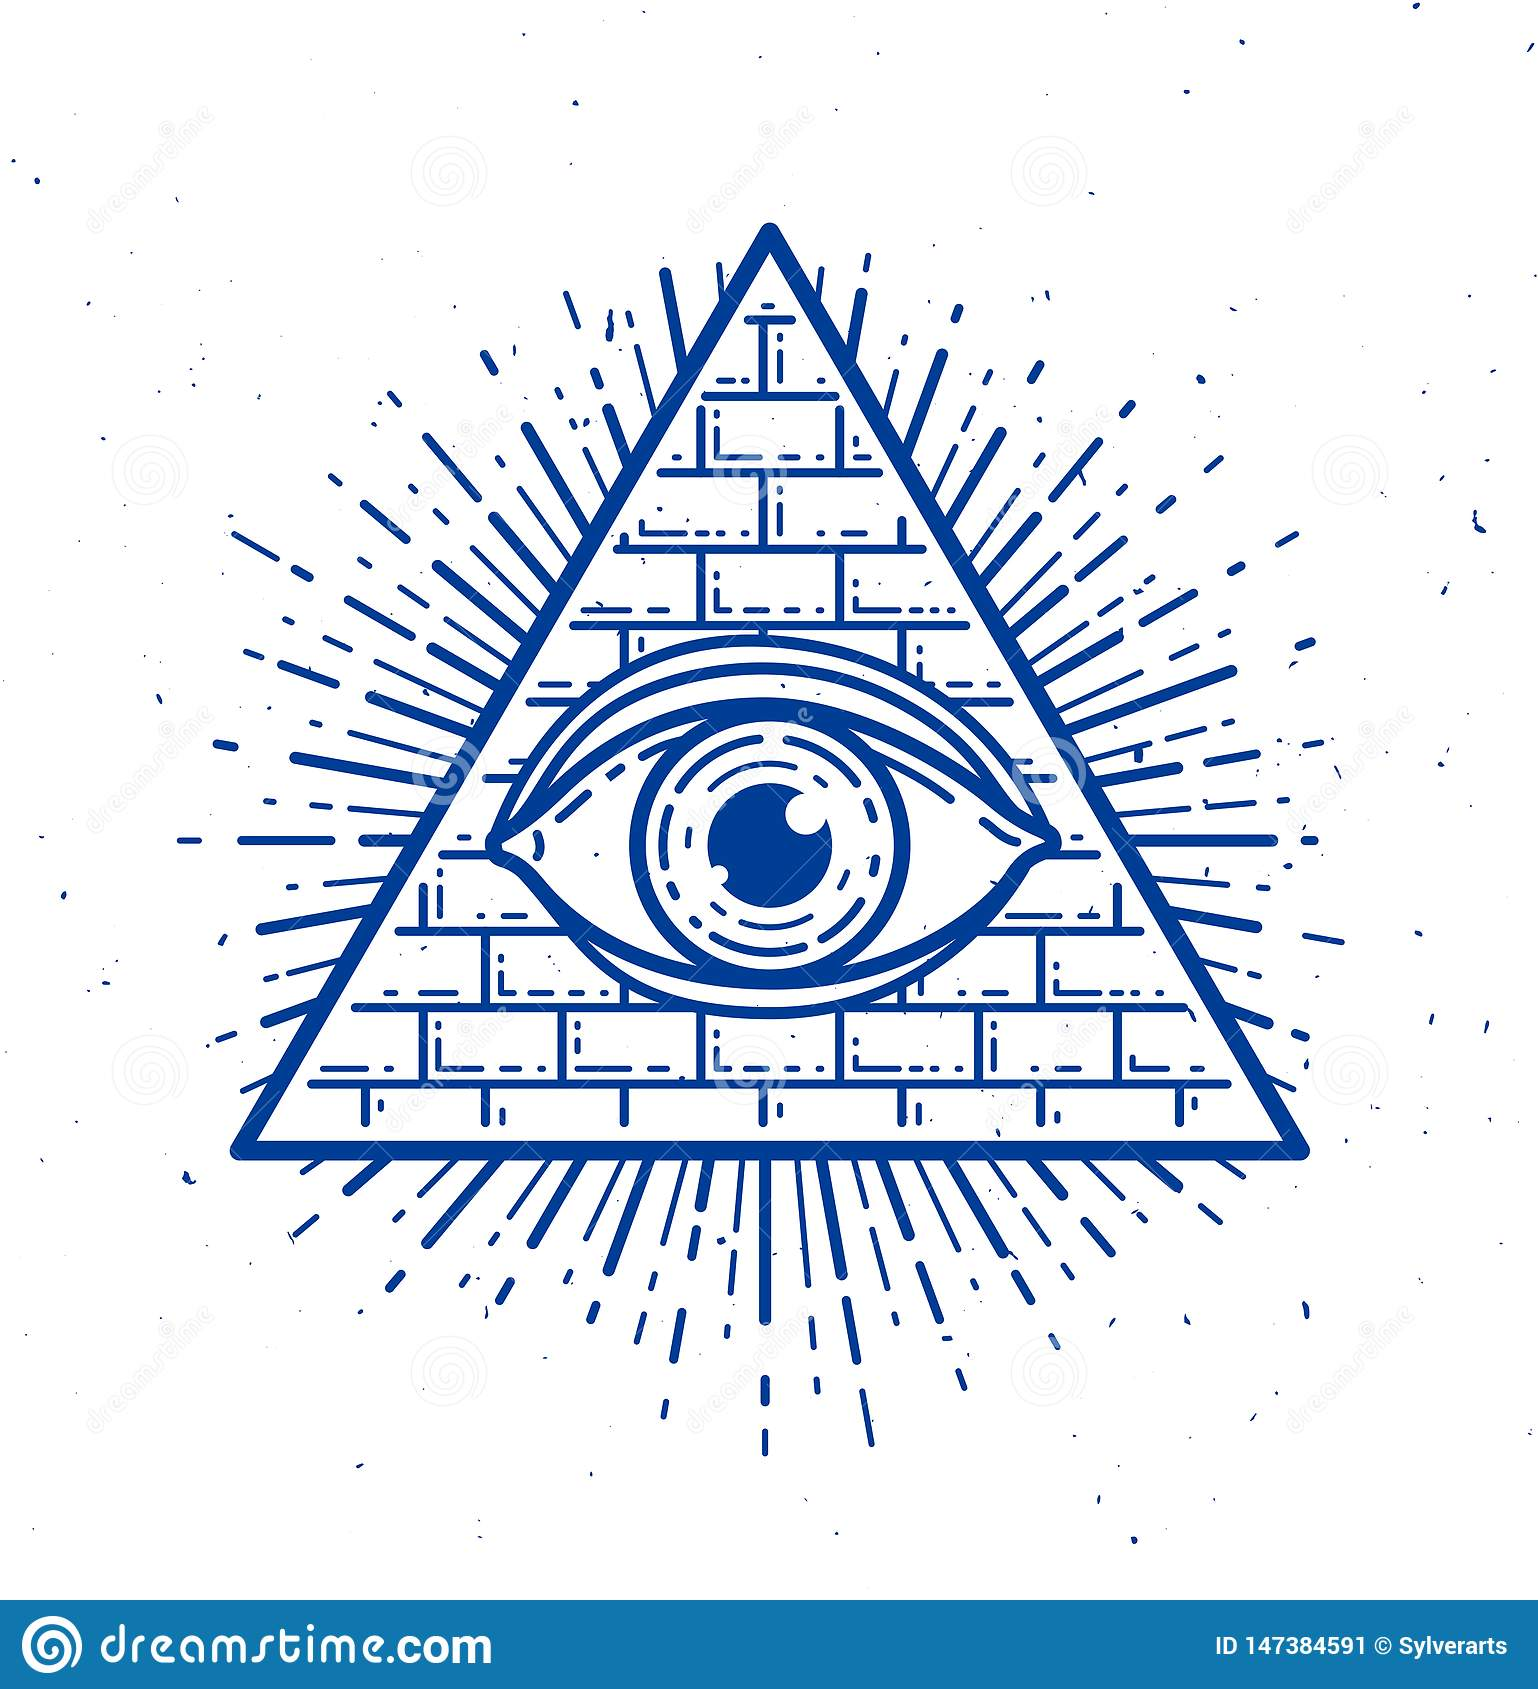 All Seeing Eye Of God In Sacred Geometry Triangle, Masonry